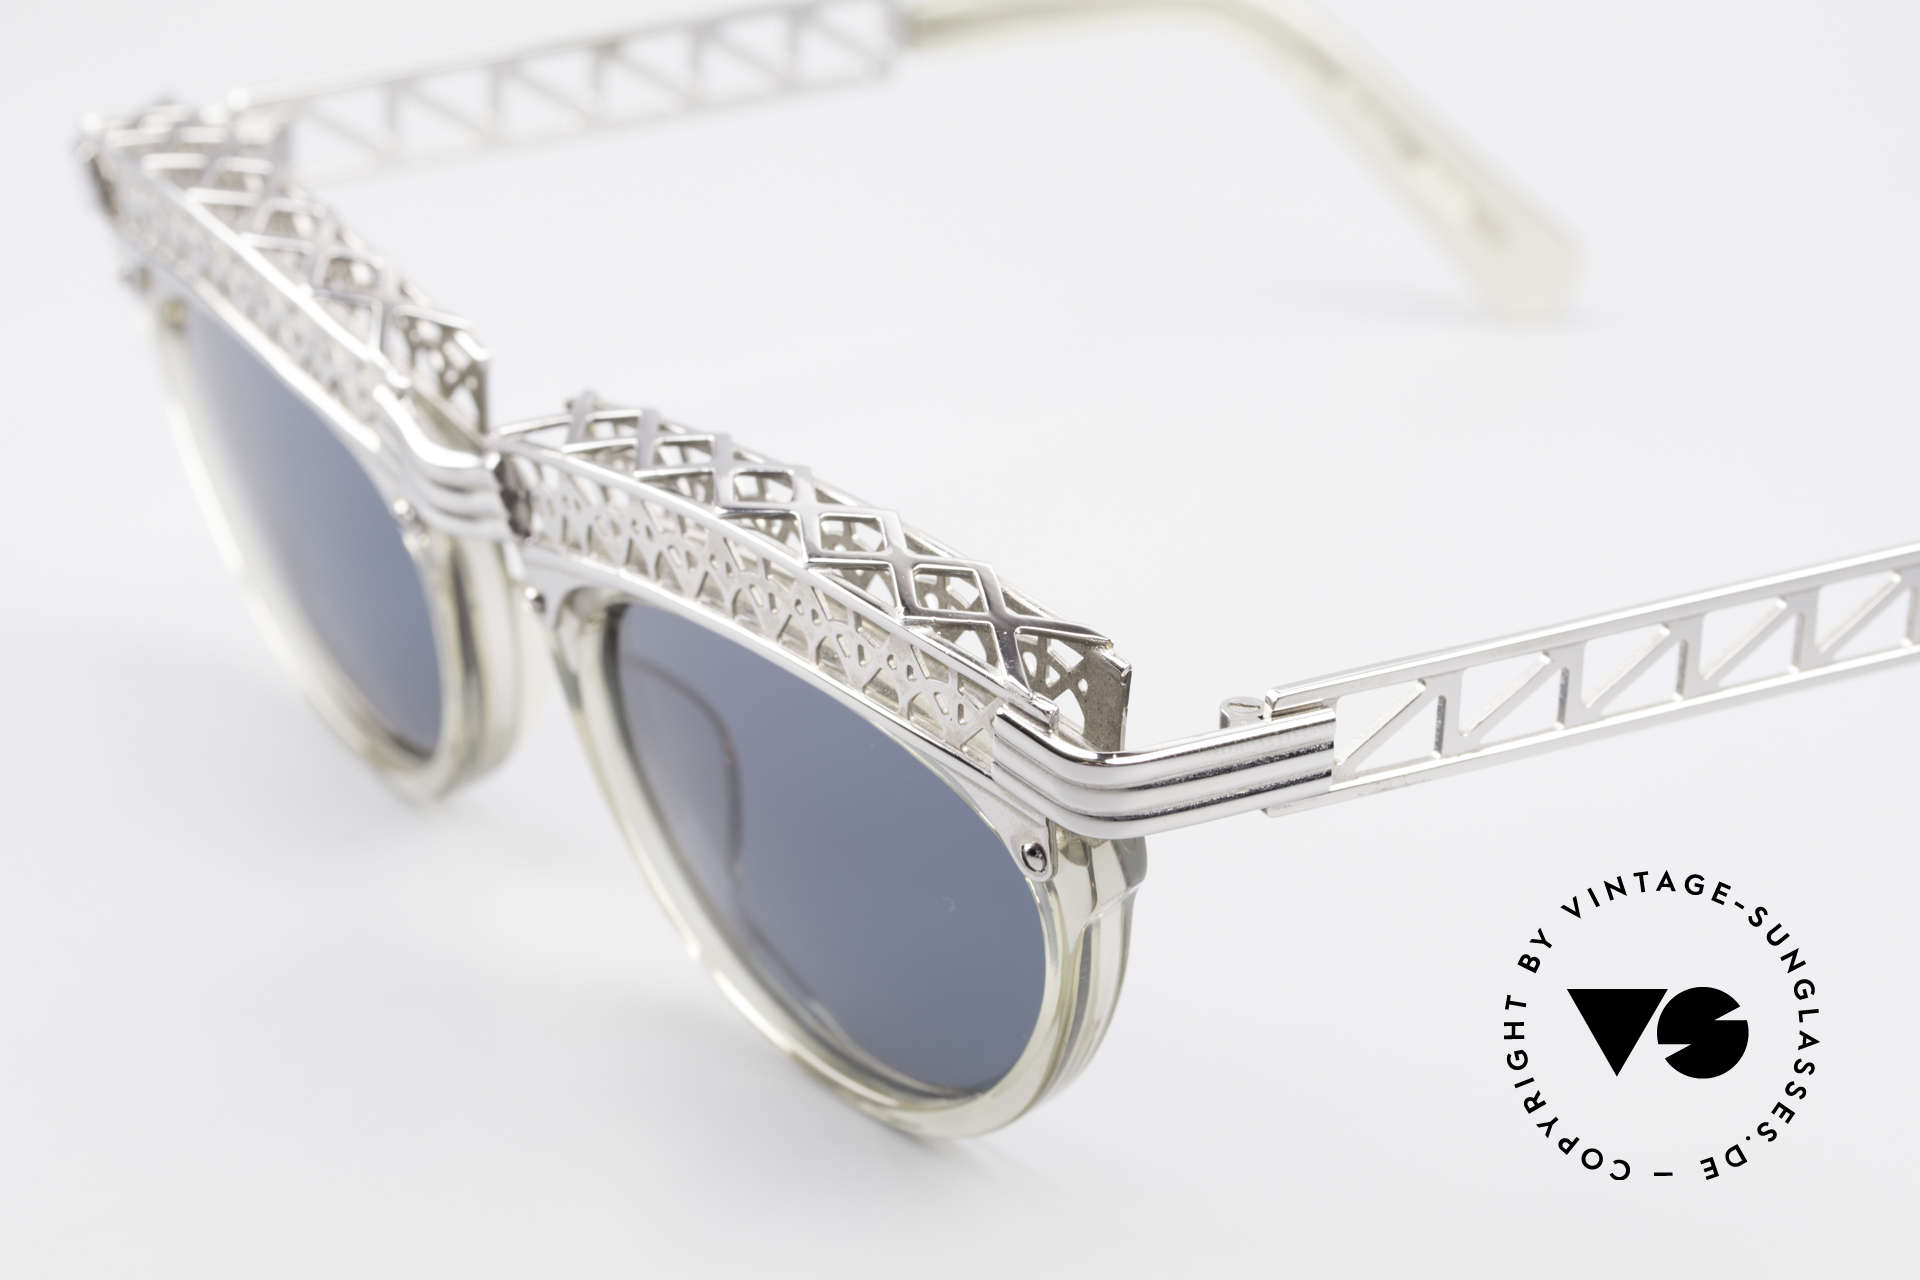 Jean Paul Gaultier 56-0271 Eiffel Tower Rihanna Shades, monolithic - called as 'STEAMPUNK sunglasses' today, Made for Women